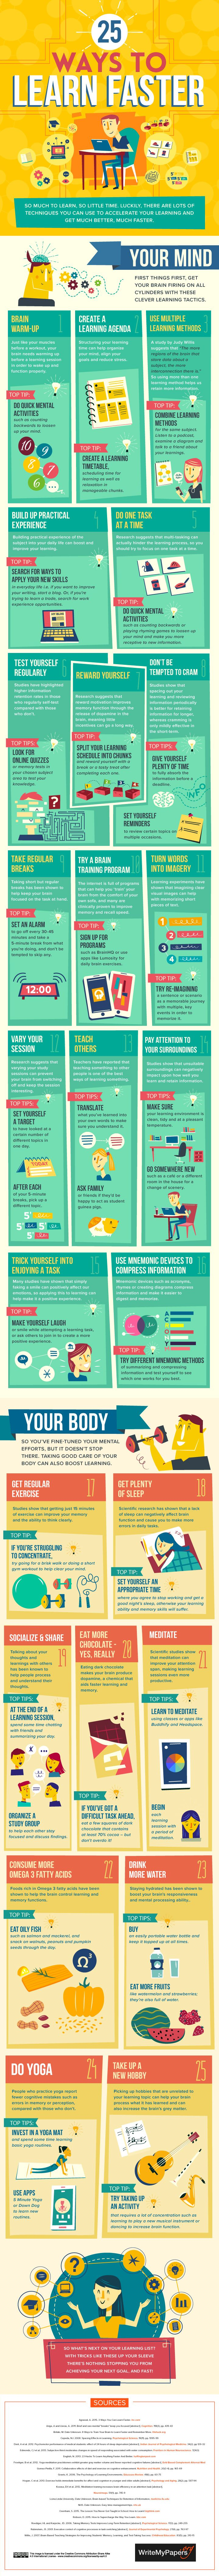 25 Ways to Learn Faster (Infographic)                                                                                                                                                                                 More